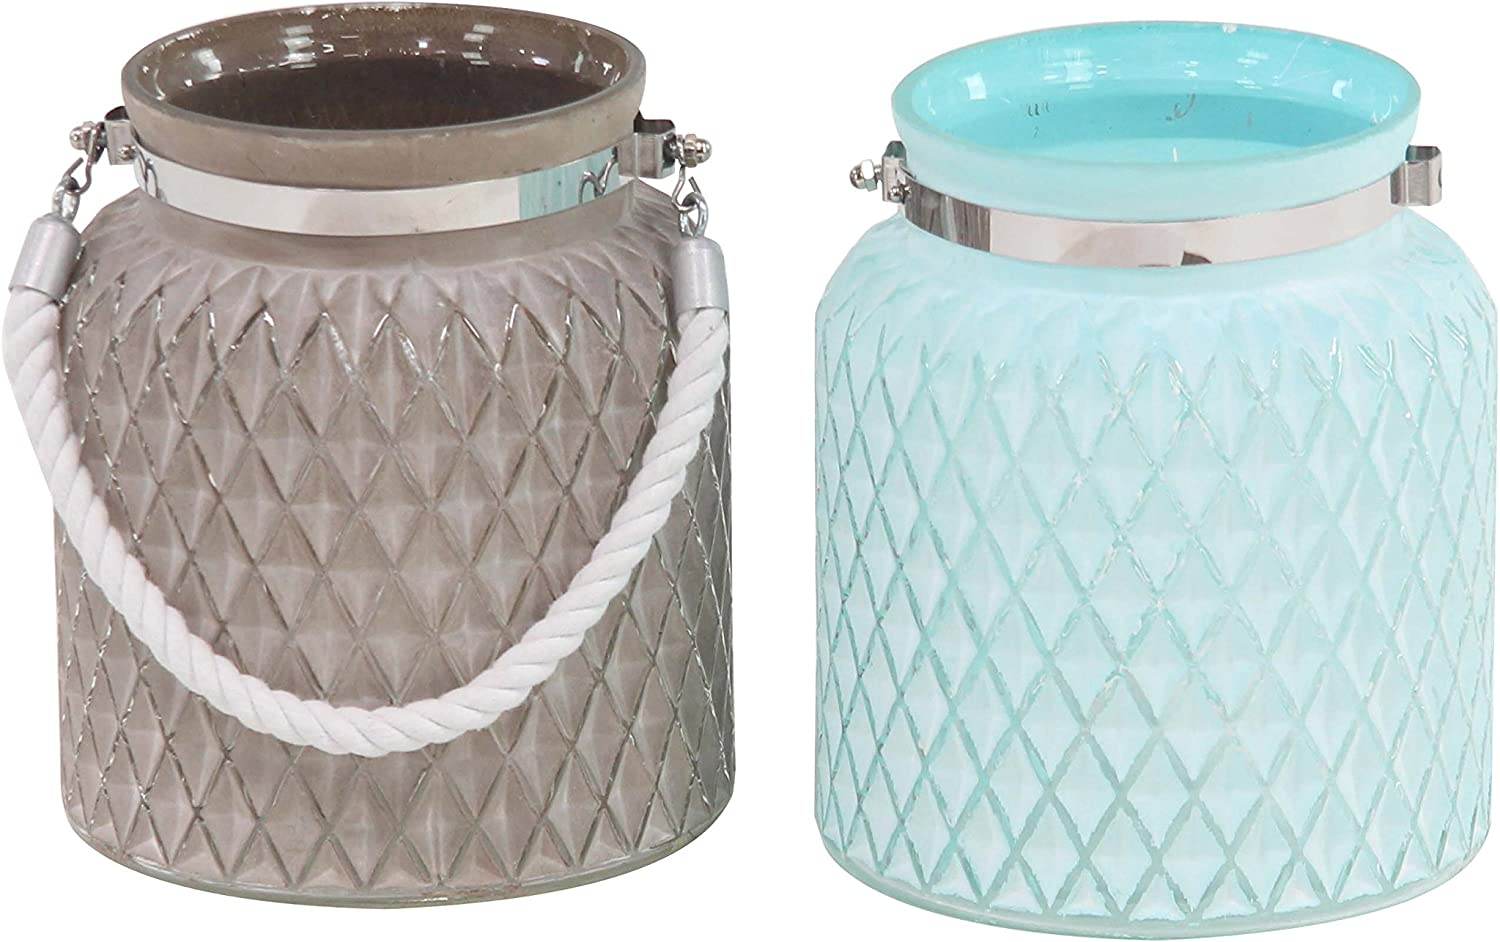 New Shipping Free Selling and selling Deco 79 39385 Candle Lantern Brown Silver White Dark